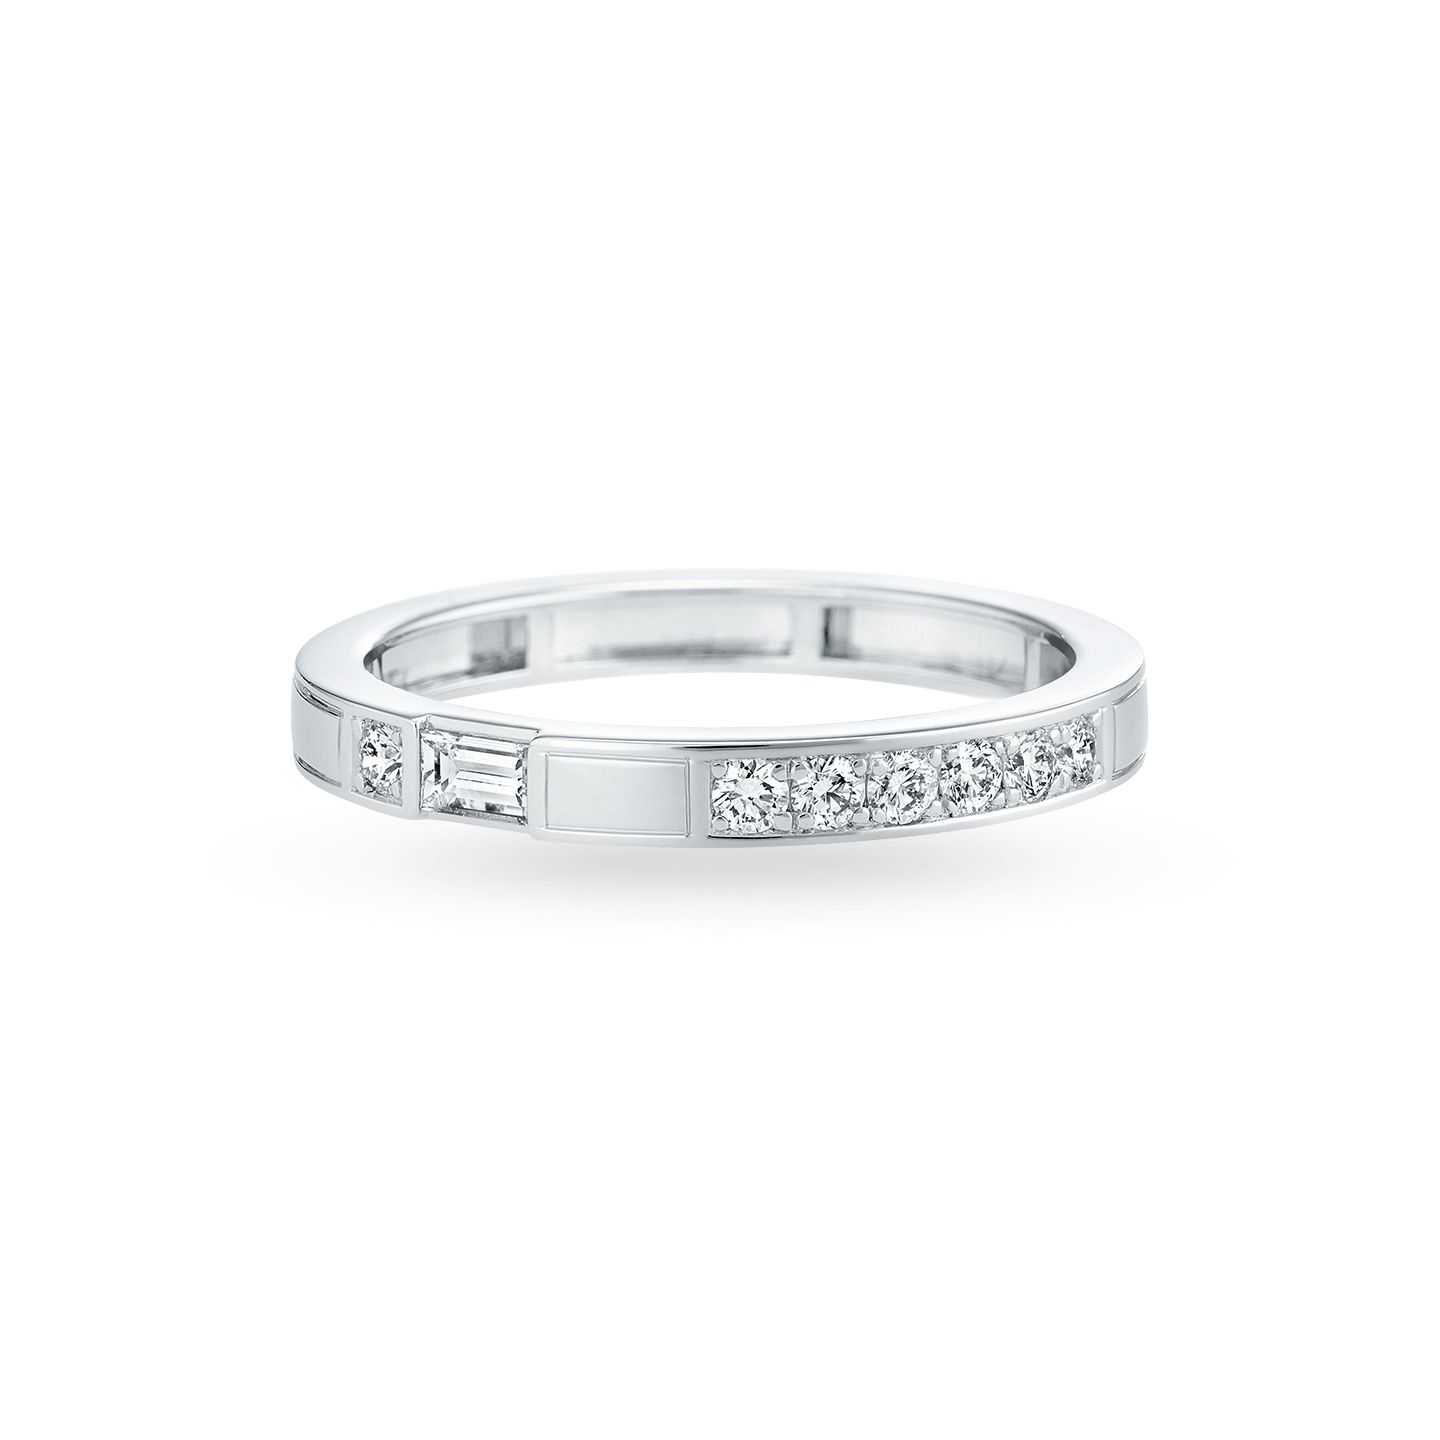 Traffic Diamond Wedding Band, Product Image 1